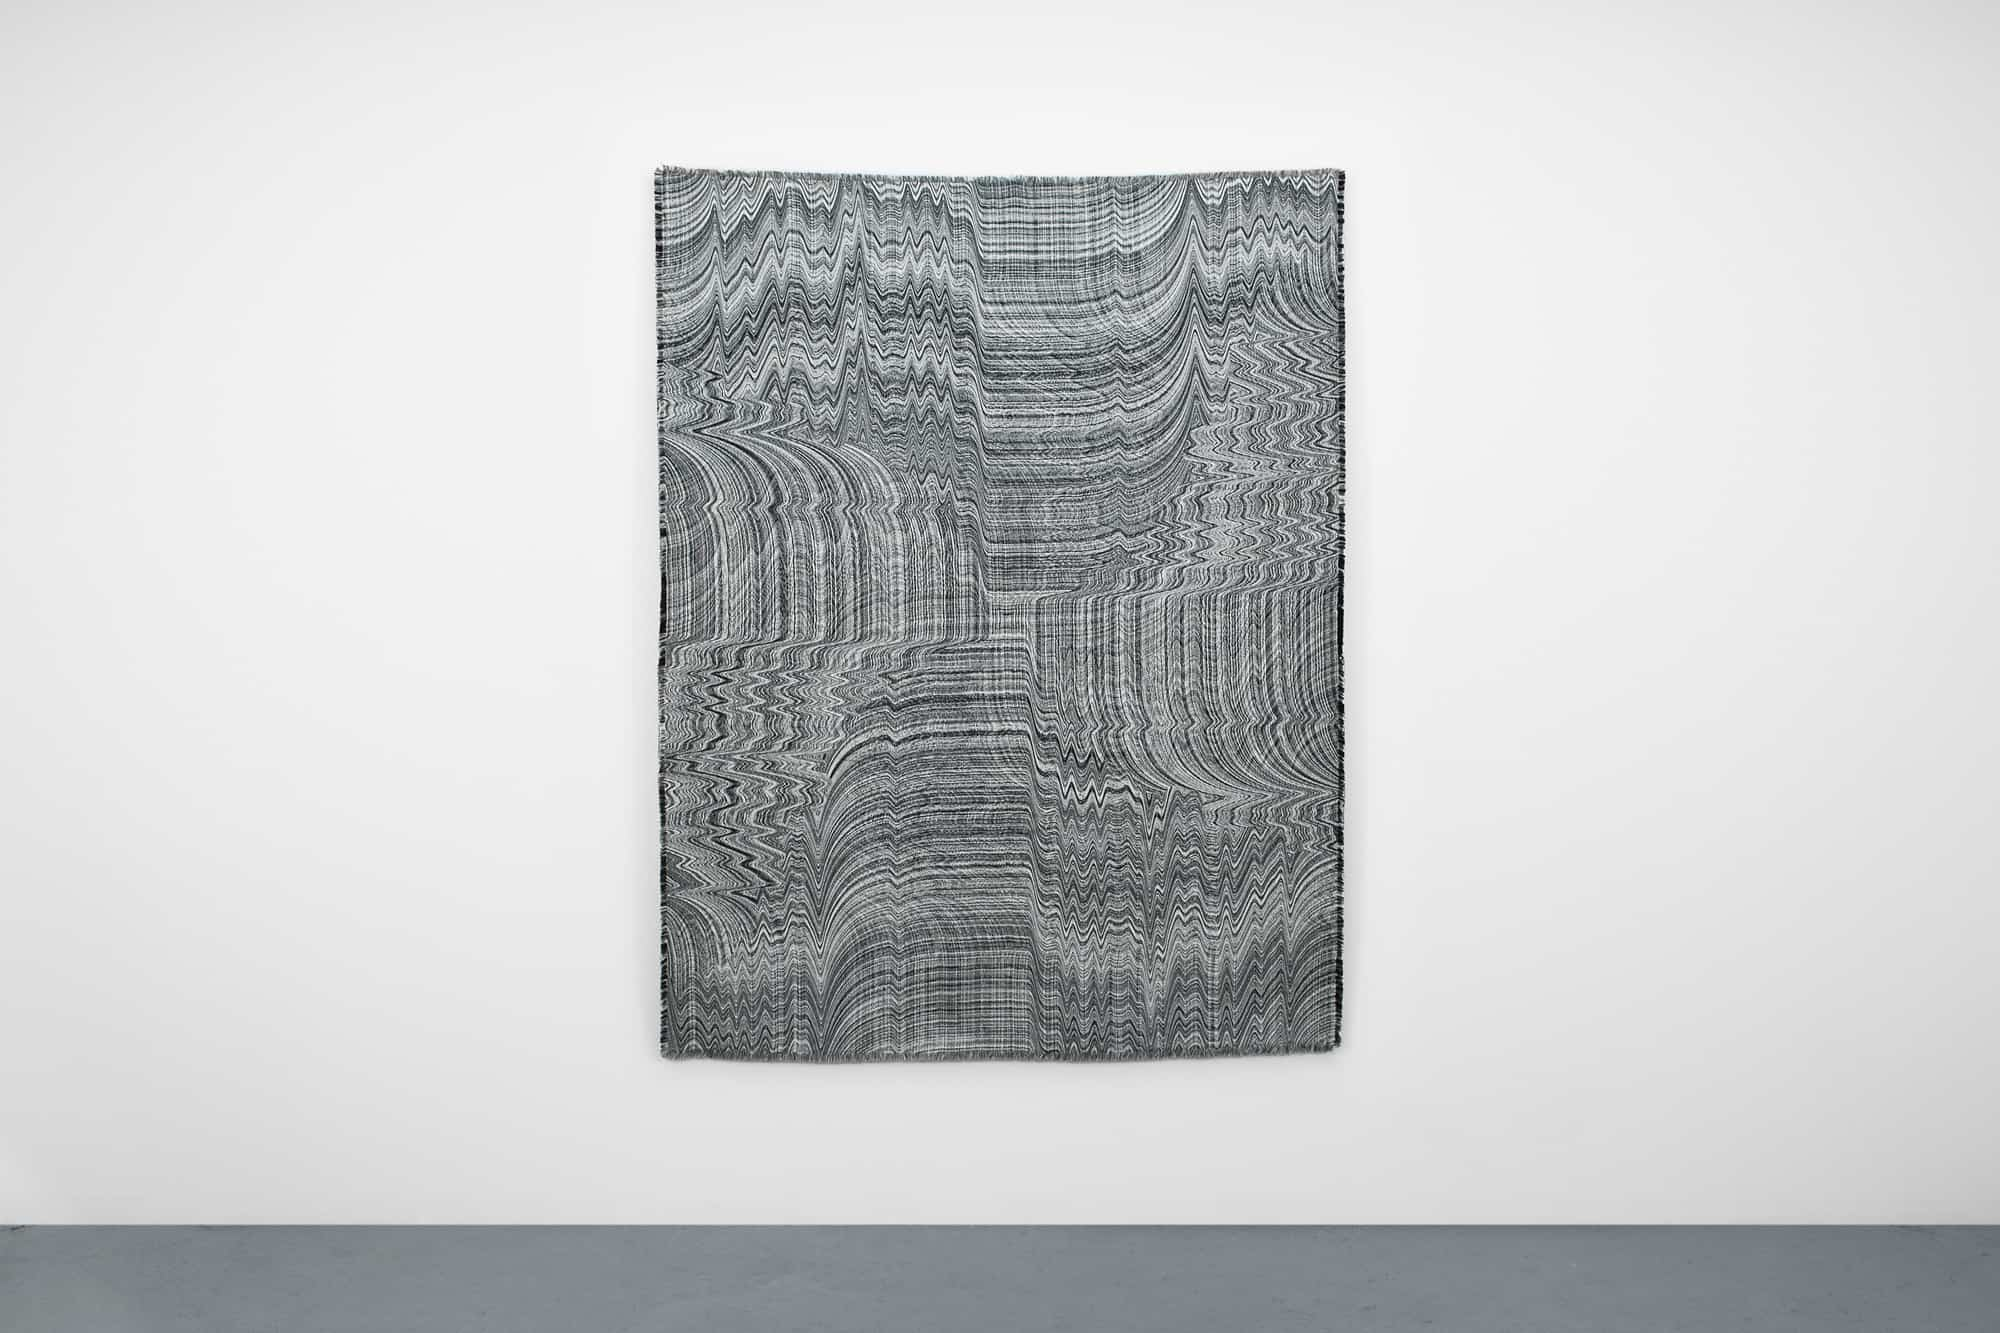 "Laura Splan, Embodied Objects (Blink Twice), 2016, computerized jacquard loom woven cotton tapestry, 70""H x 53""W"